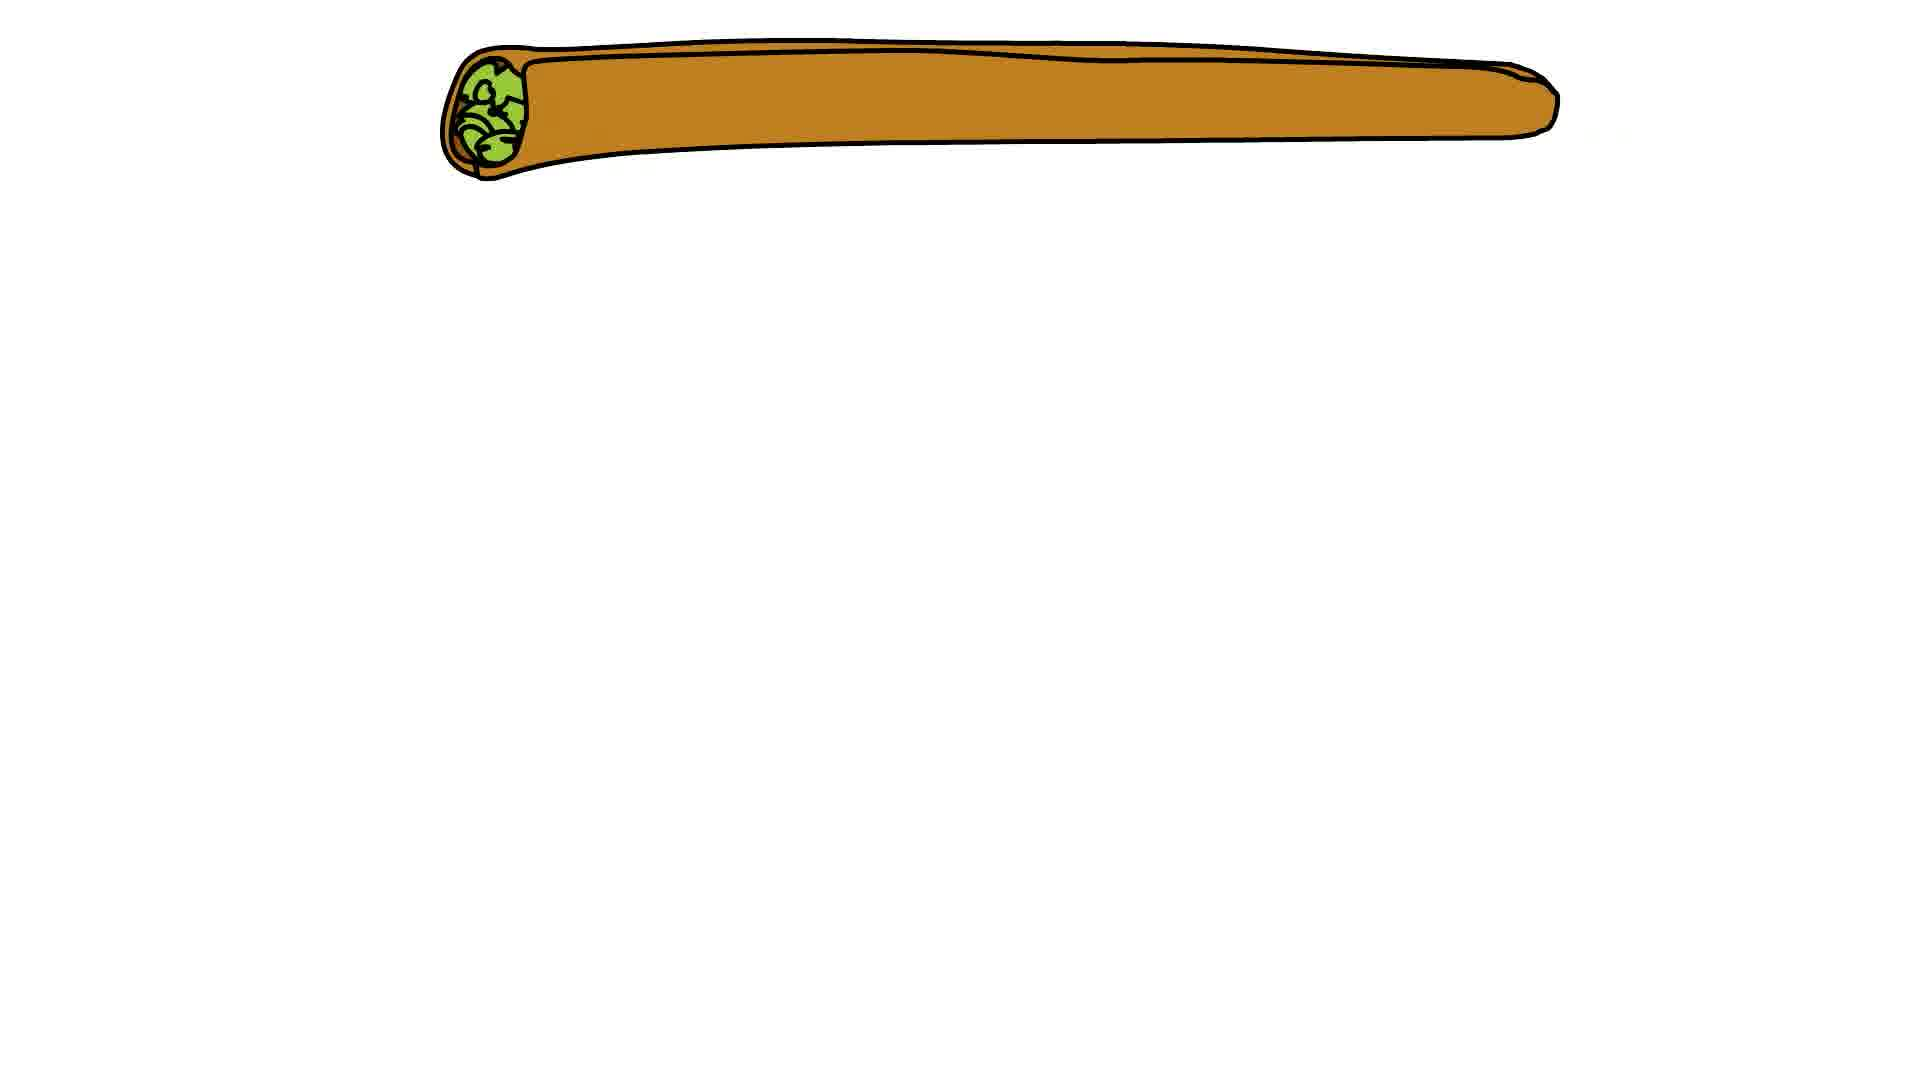 Rolled joint png transparent. Blunt clipart kush